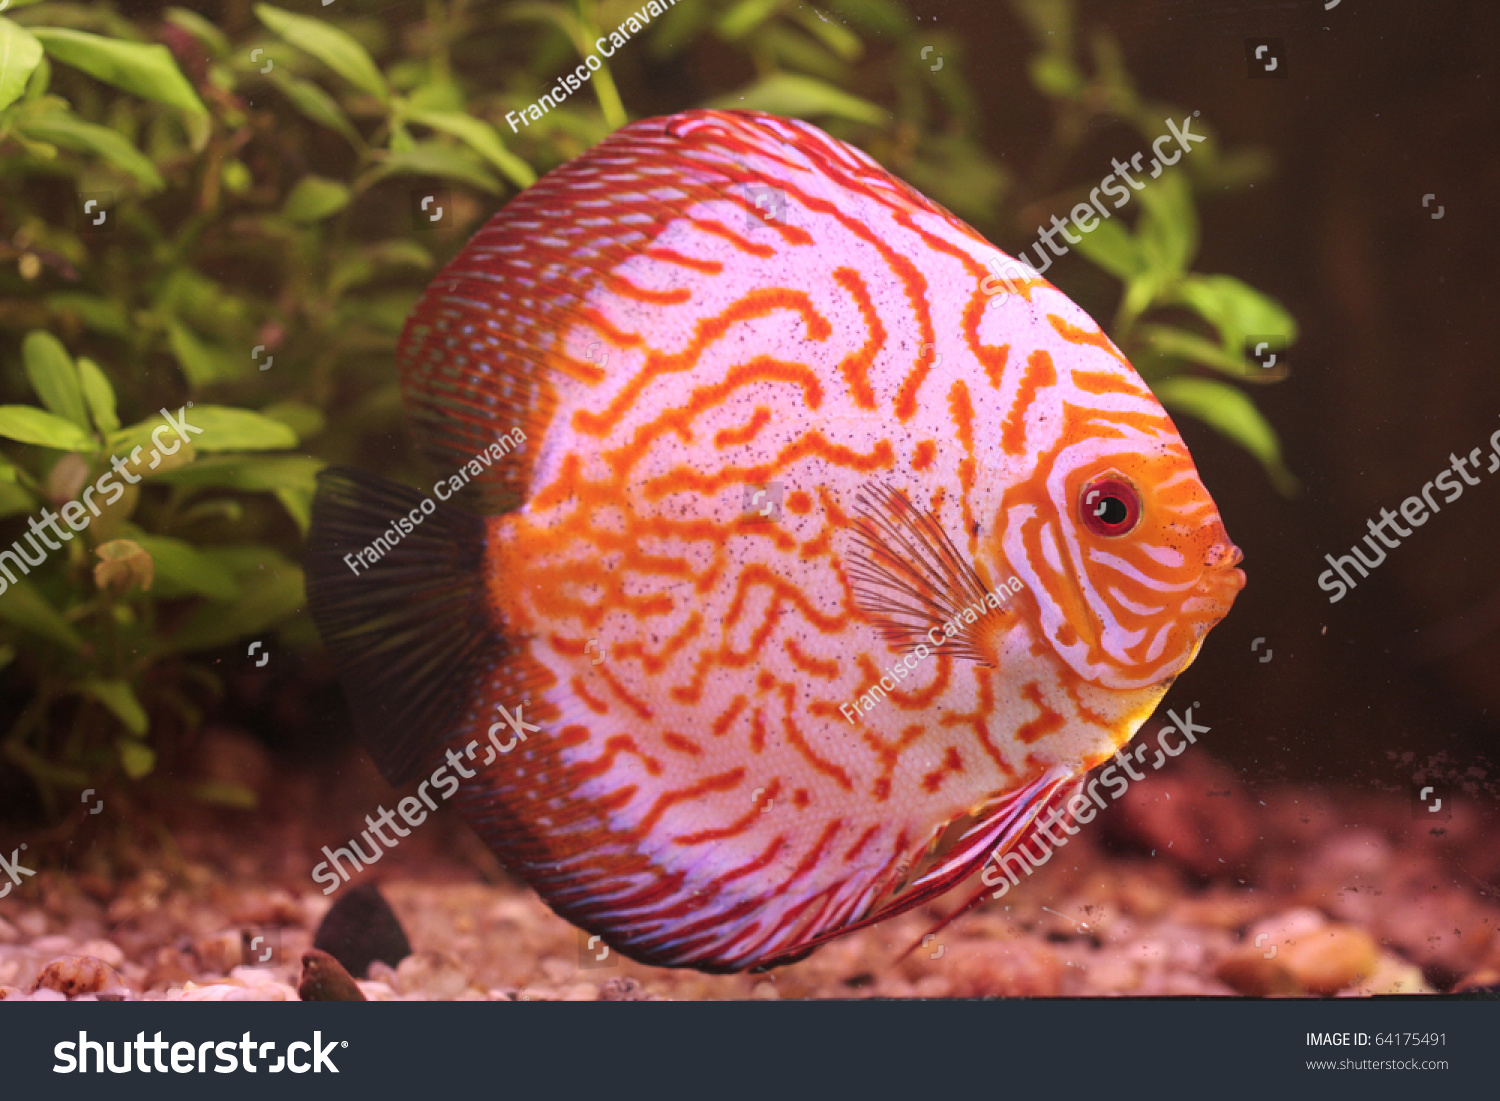 Closeup Colorful Tropical Discus Fish Stock Photo & Image (Royalty ...